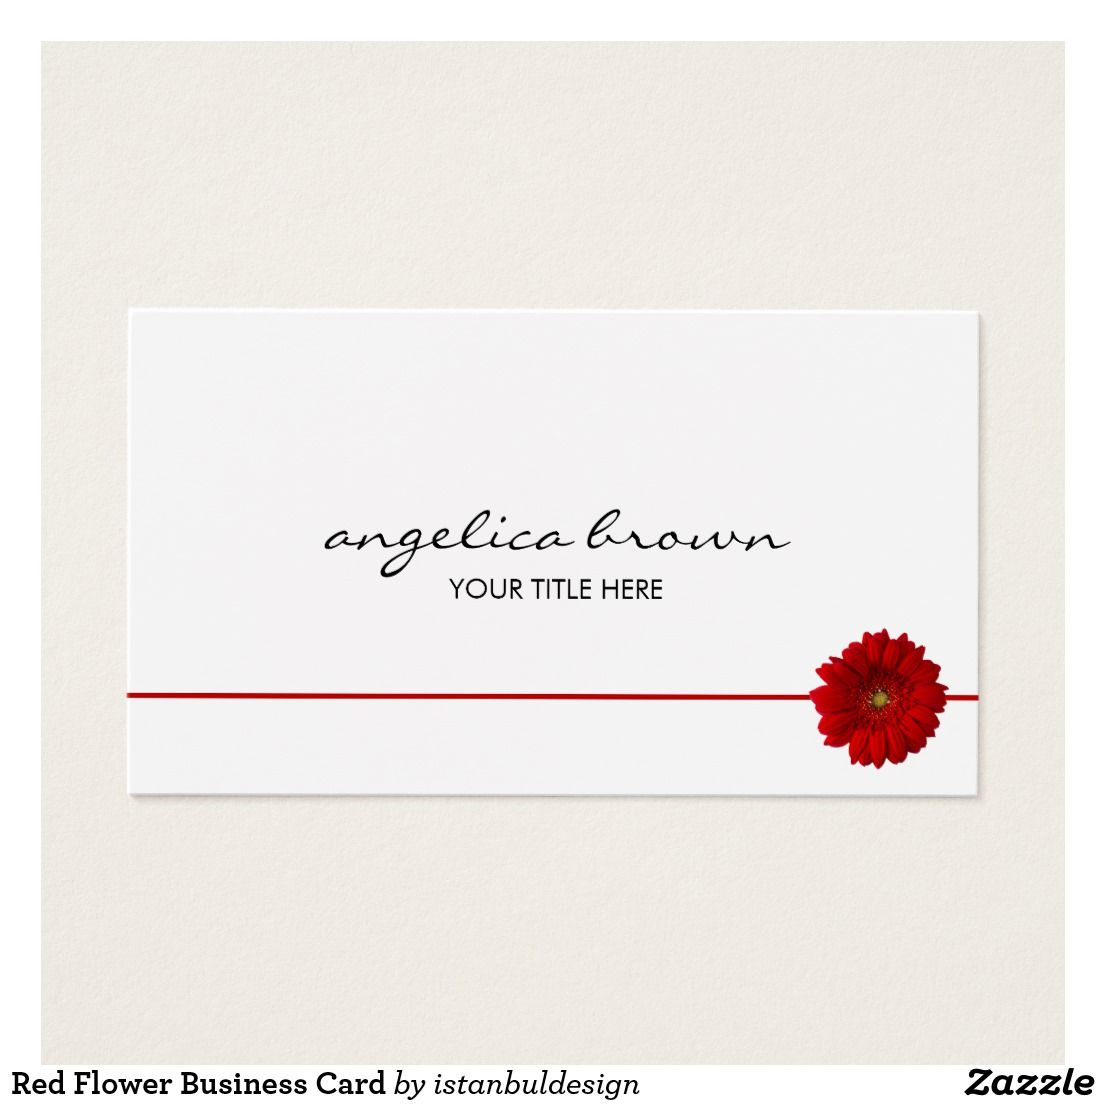 Red Flower Business Card | Personal Professional Business Cards ...